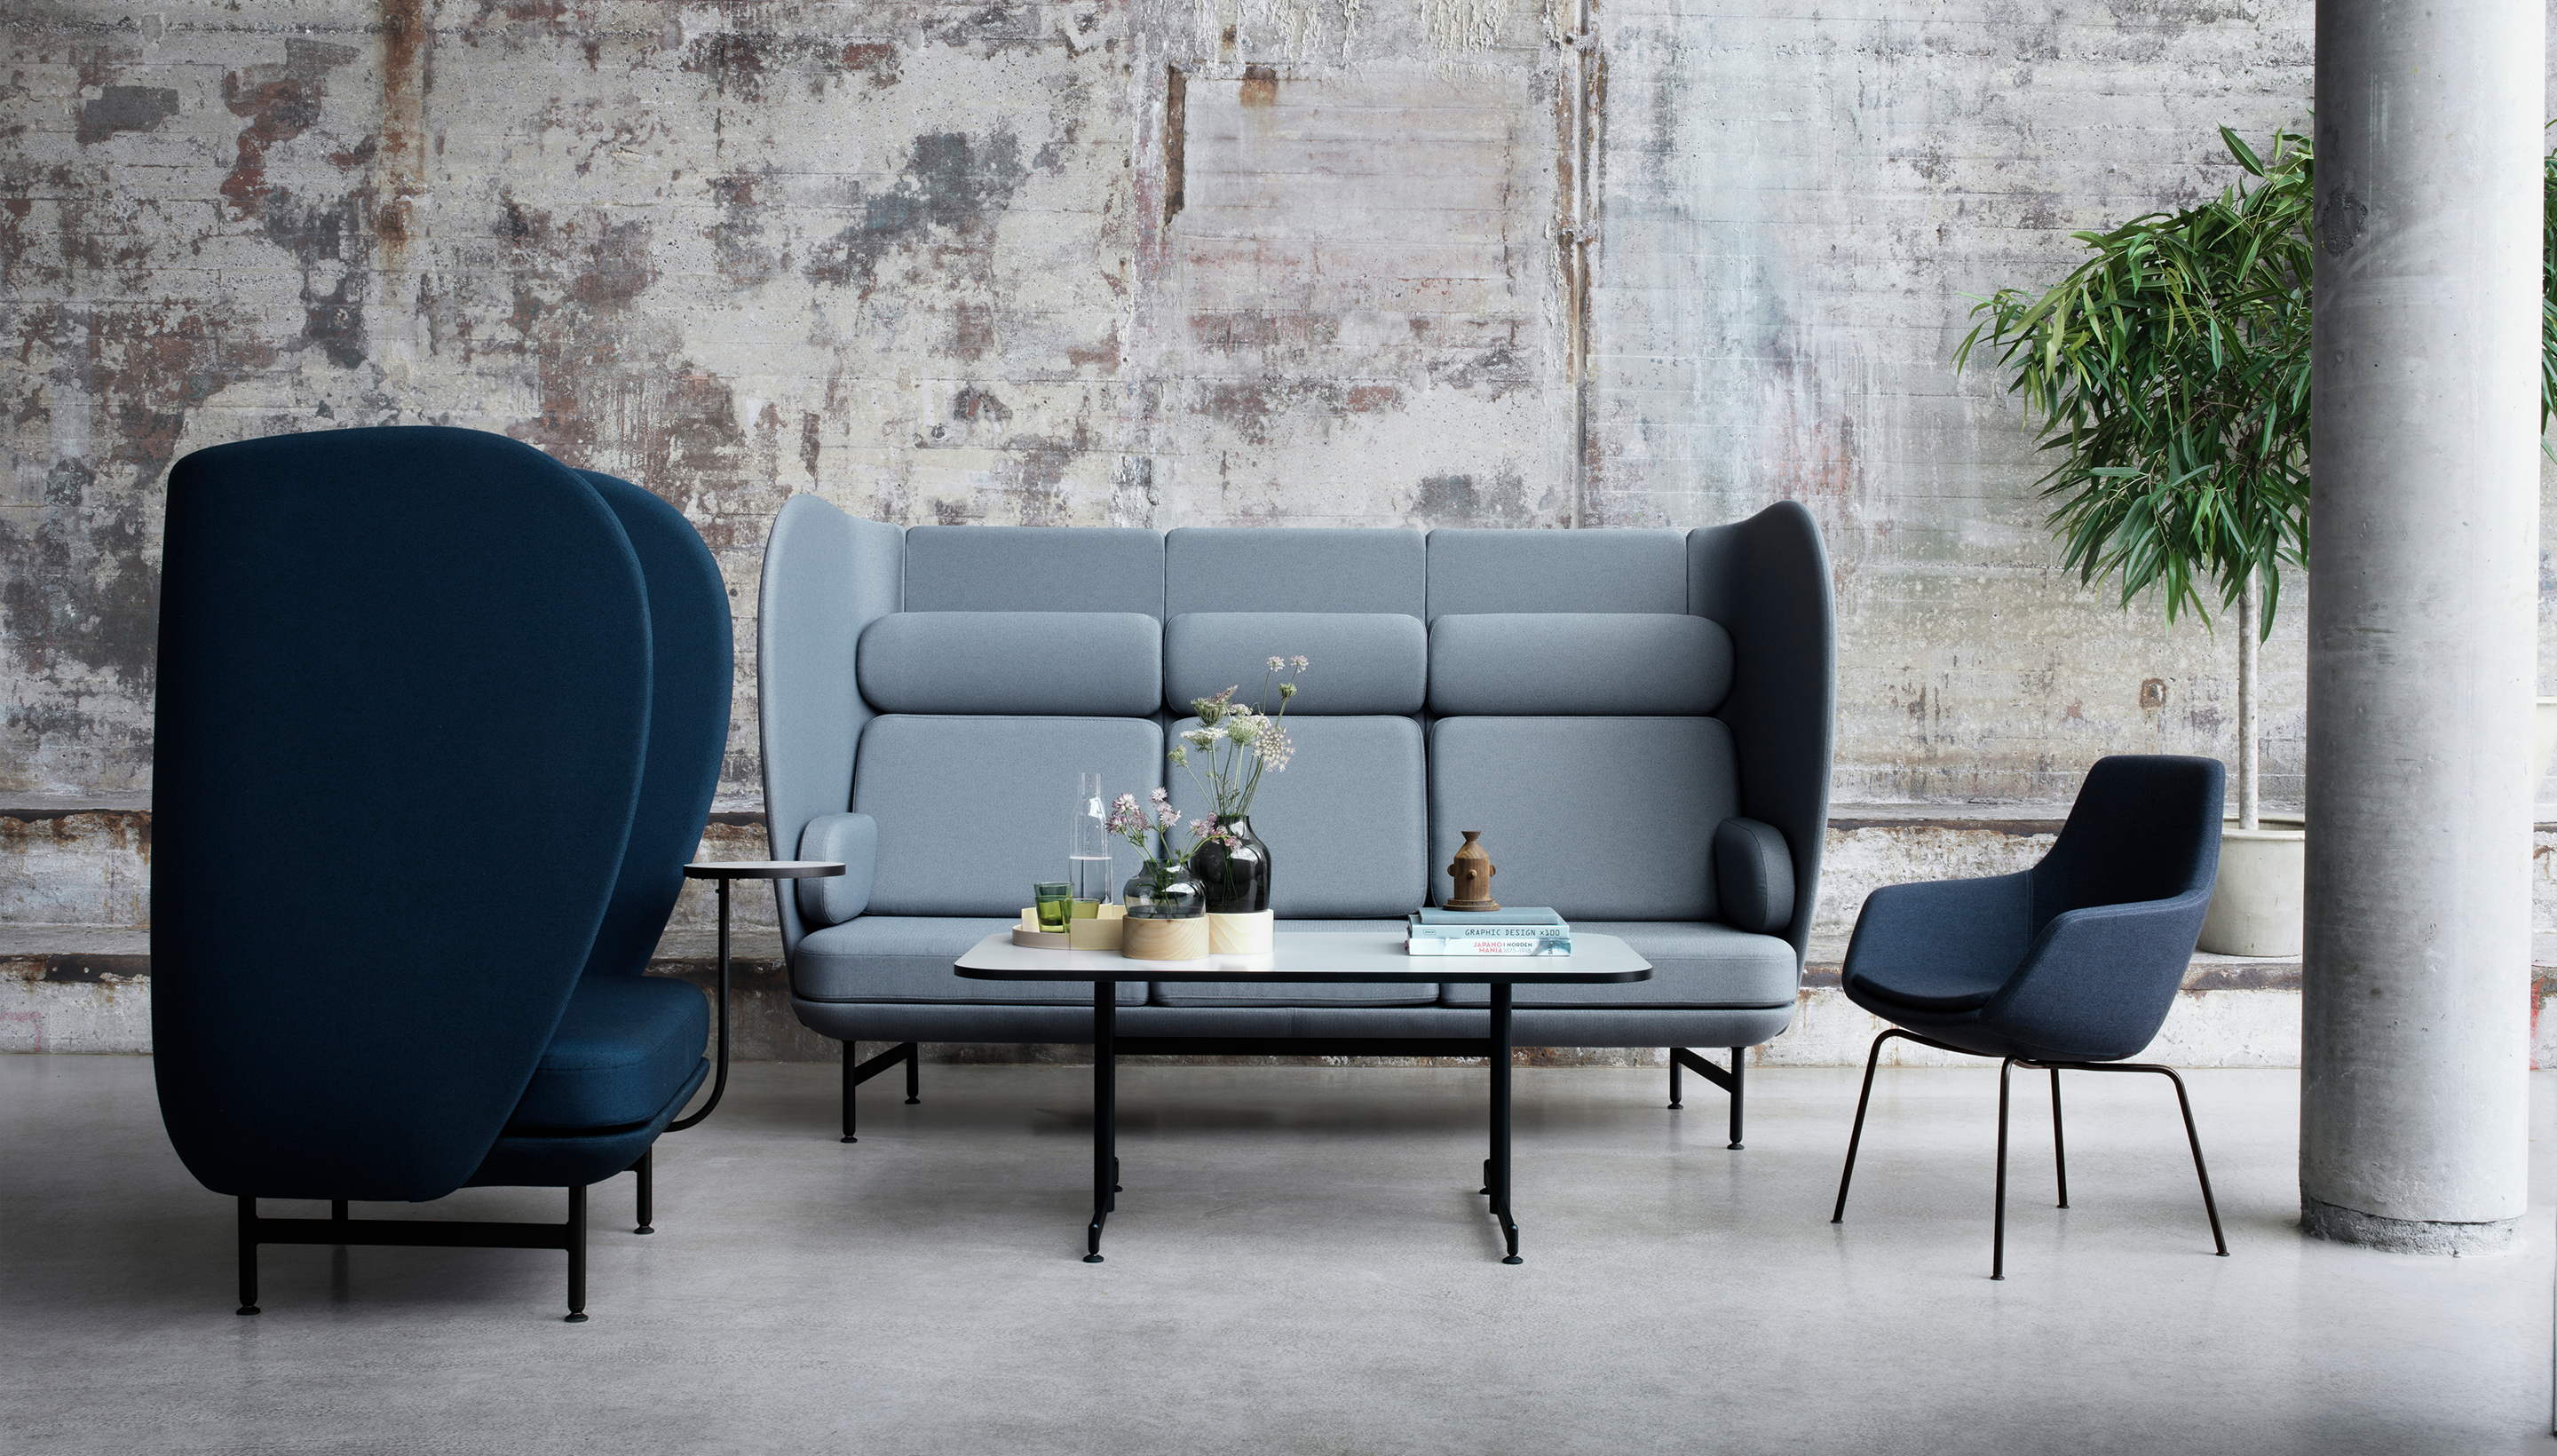 Fritz Hansen Plenum | JH1001 | One seater sofa